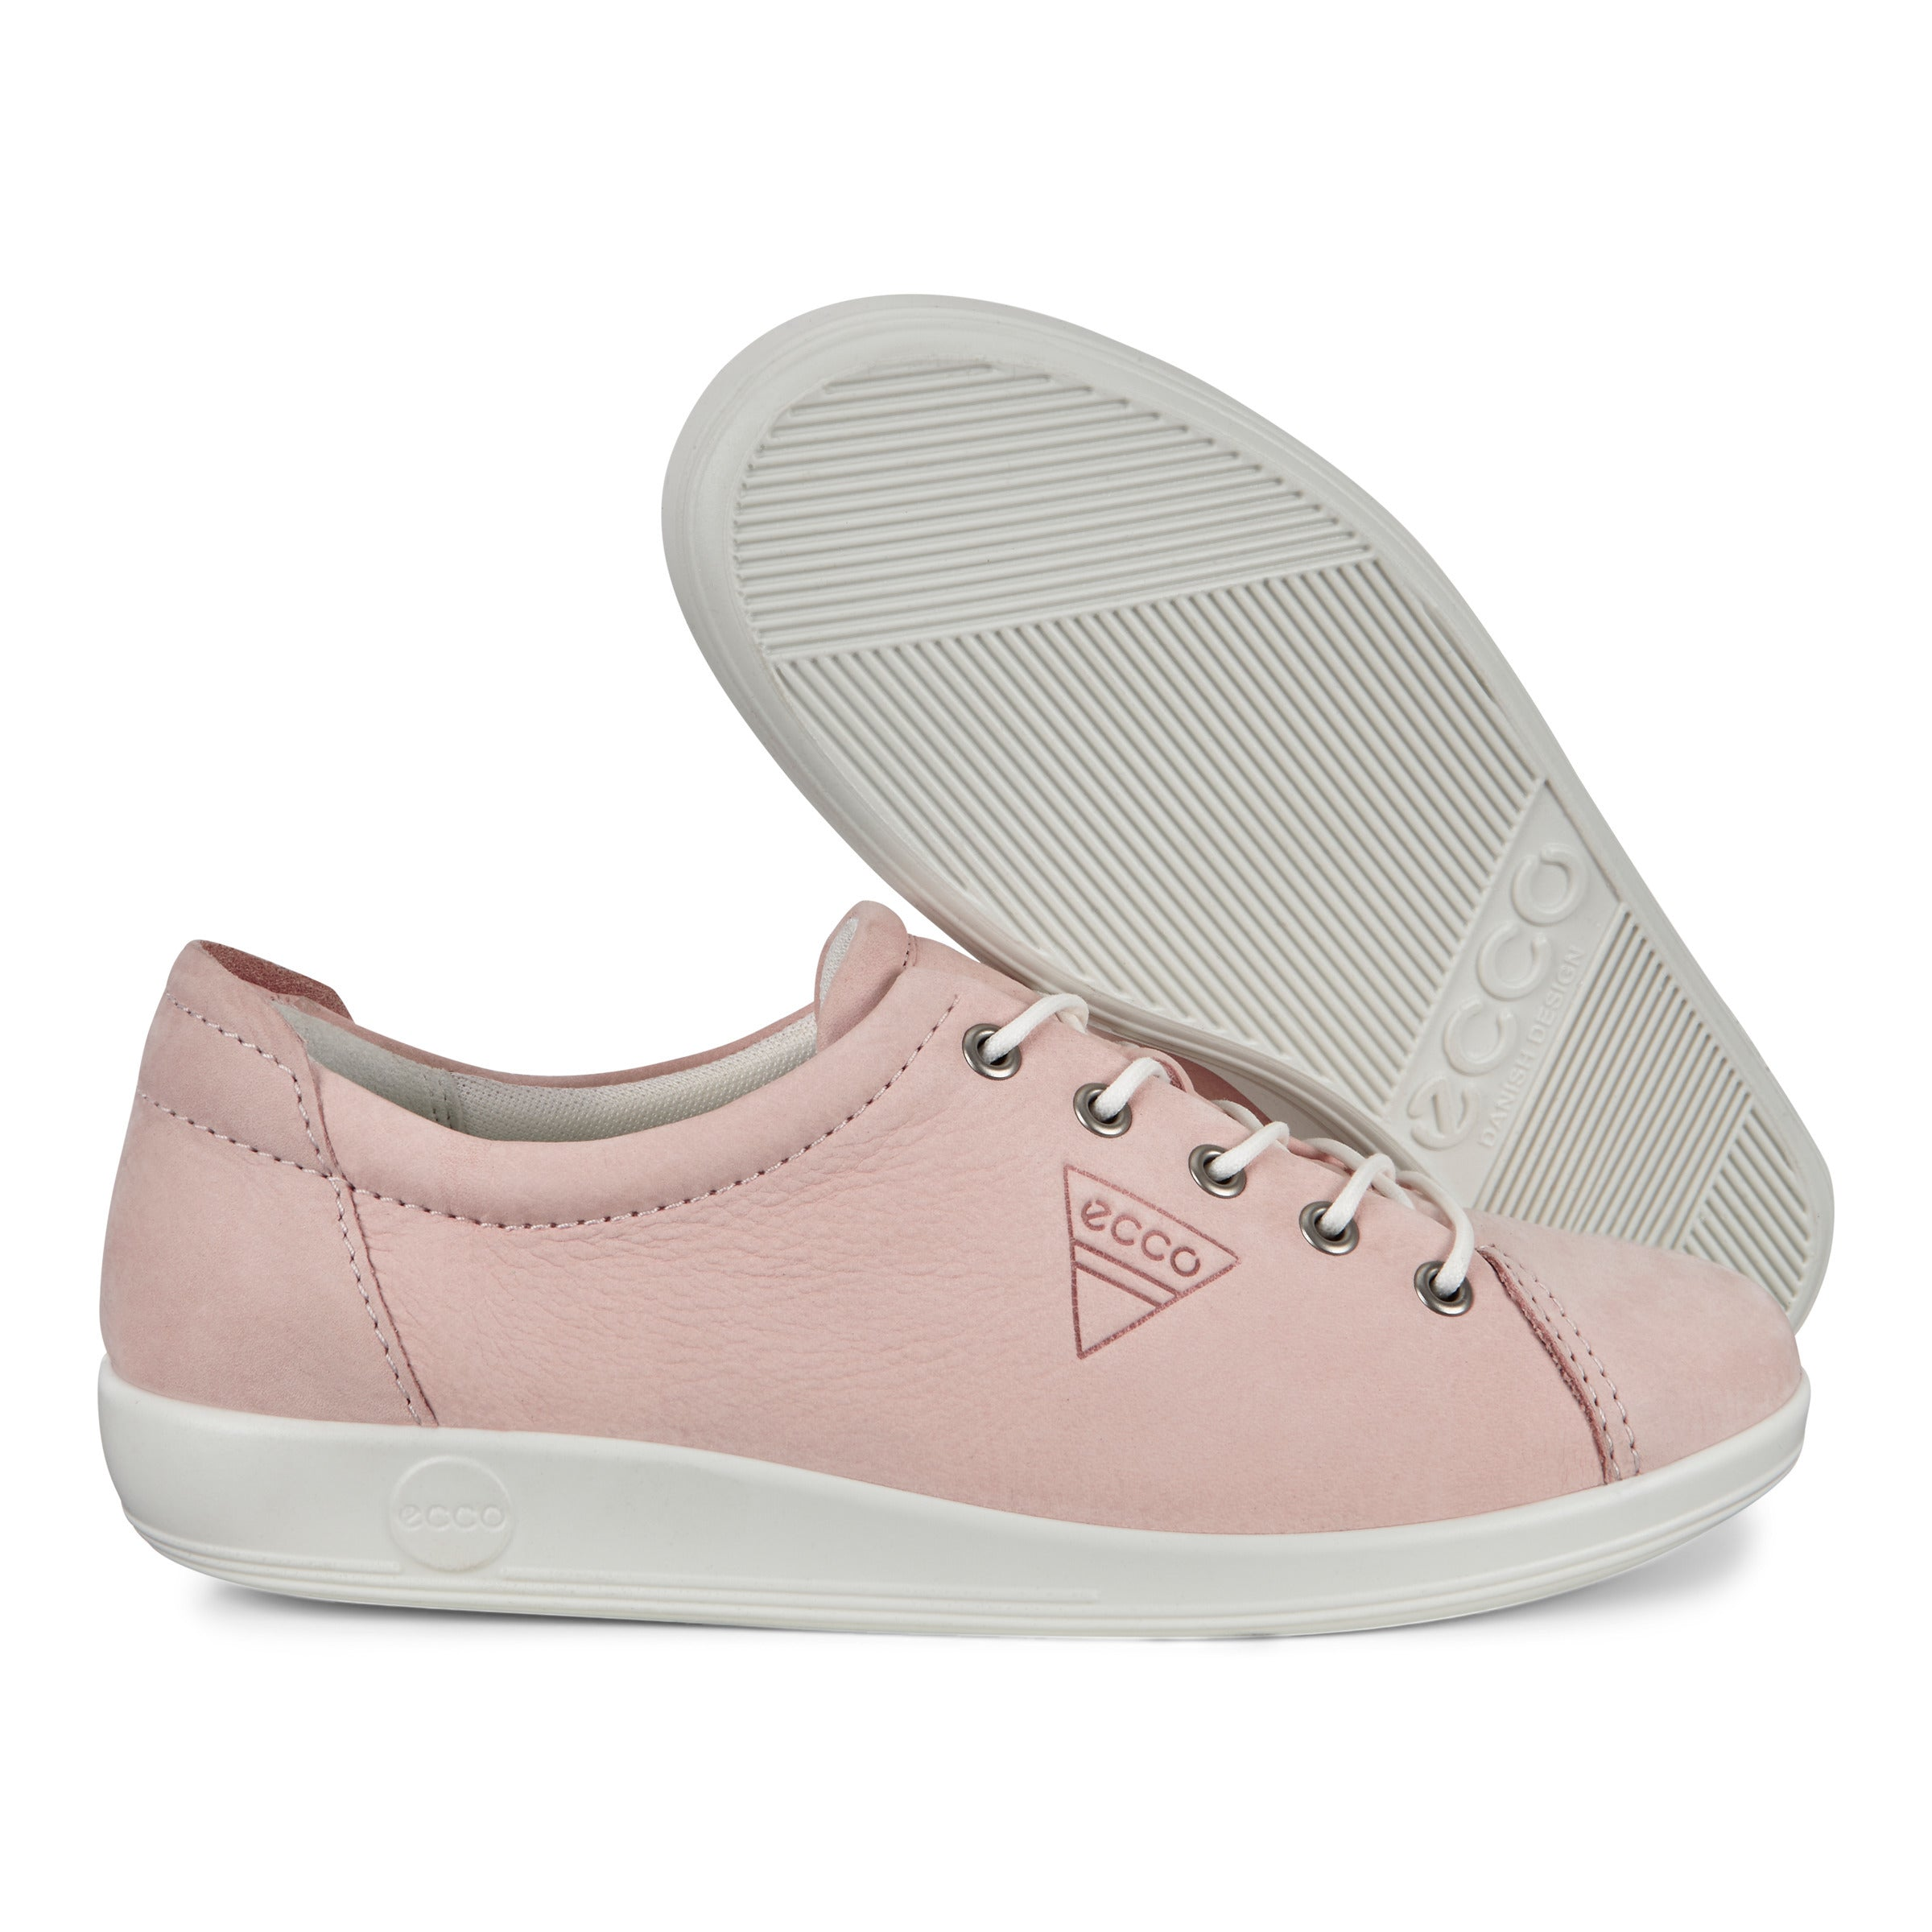 Ecco Soft 2.0 206503 - Rose Dust